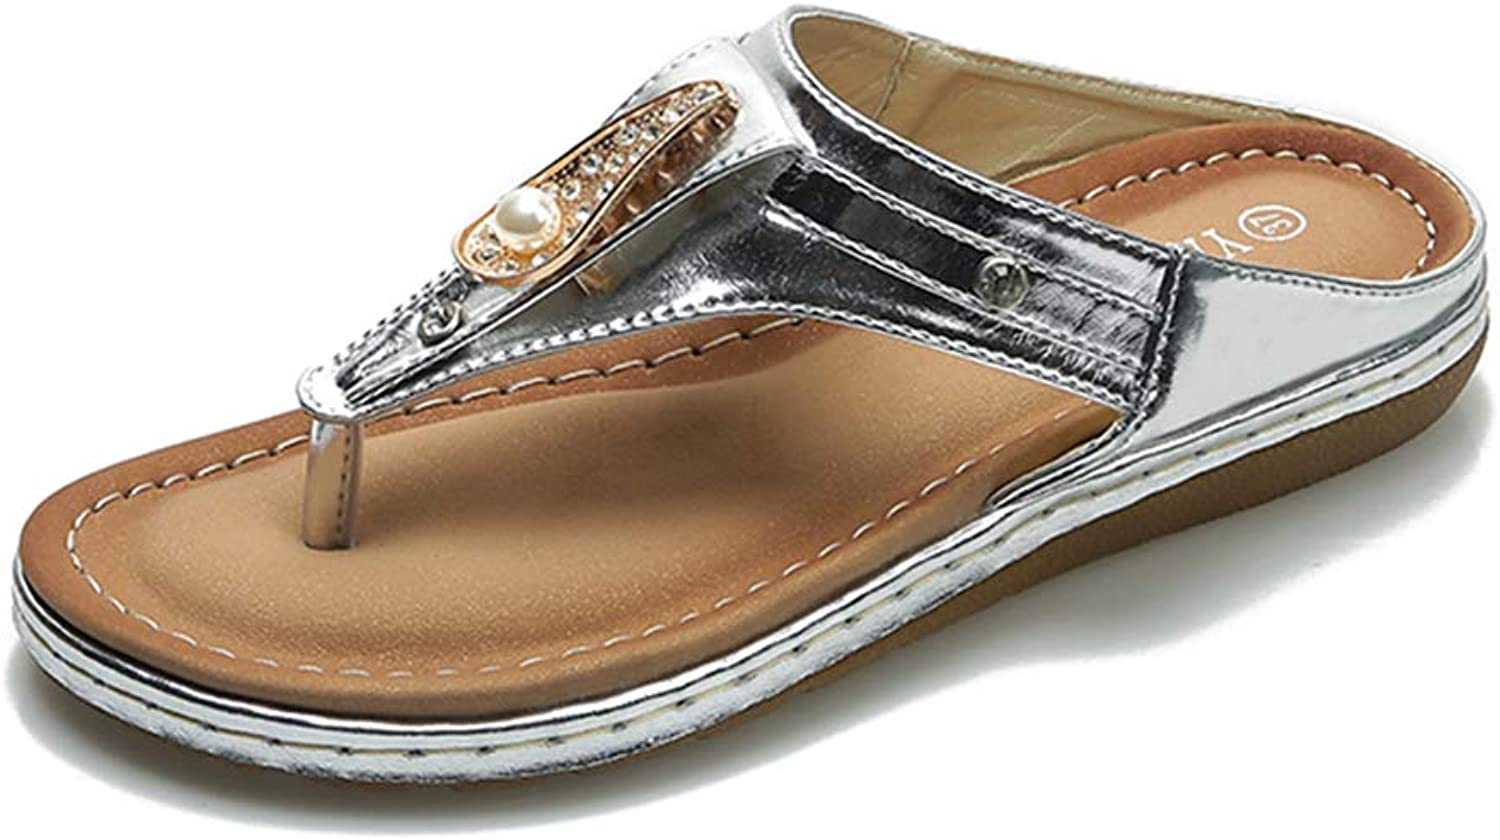 Tuoup Womens Leather Pearl Beaded Flat Flip Flops Thong Sandals